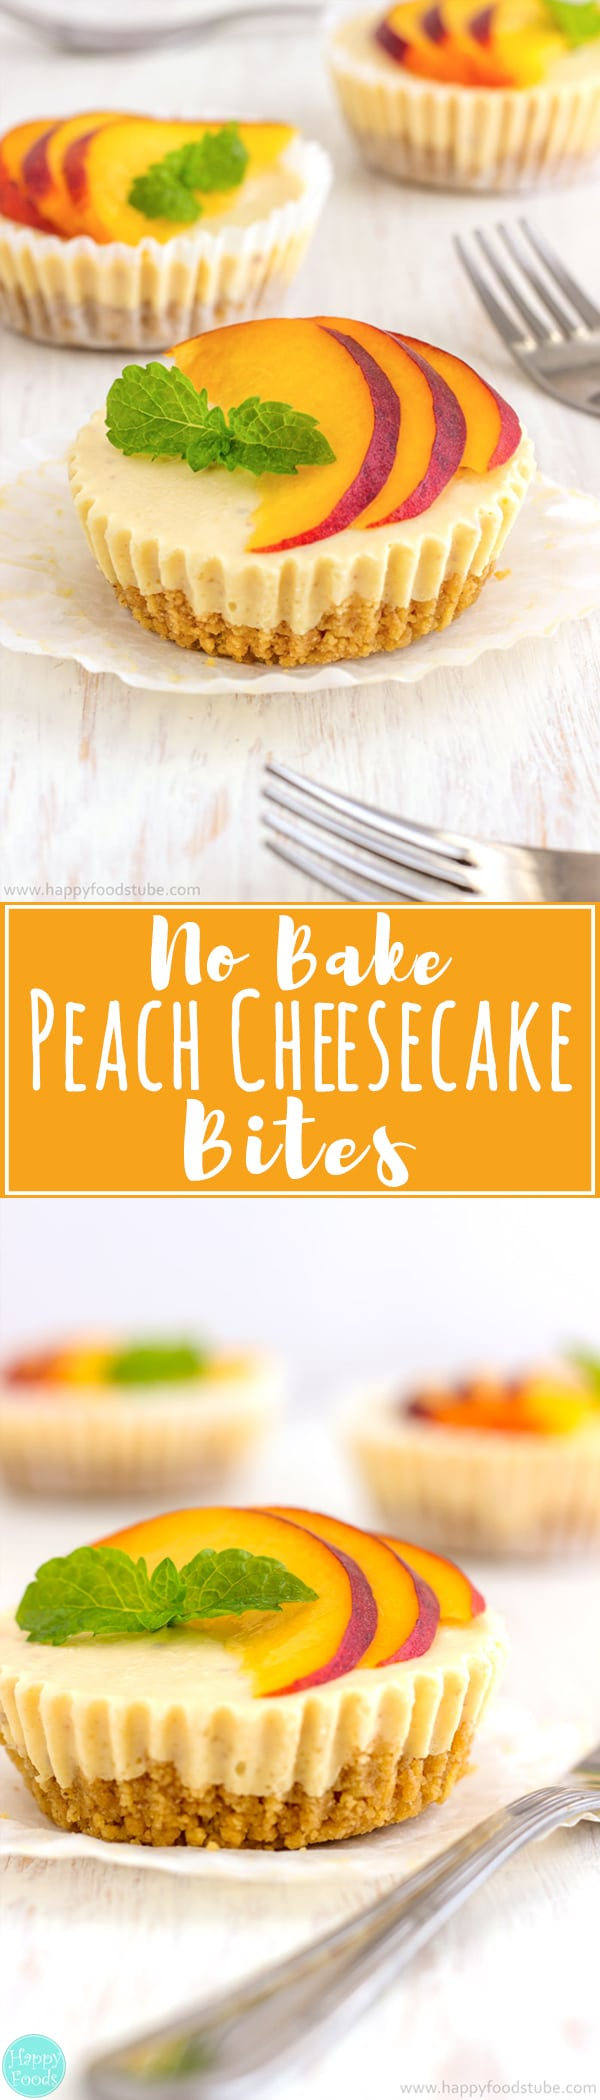 No Bake Peach Cheesecake Bites are so delicious party food. Make ahead mini desserts and they go so fast every time. Super easy recipe